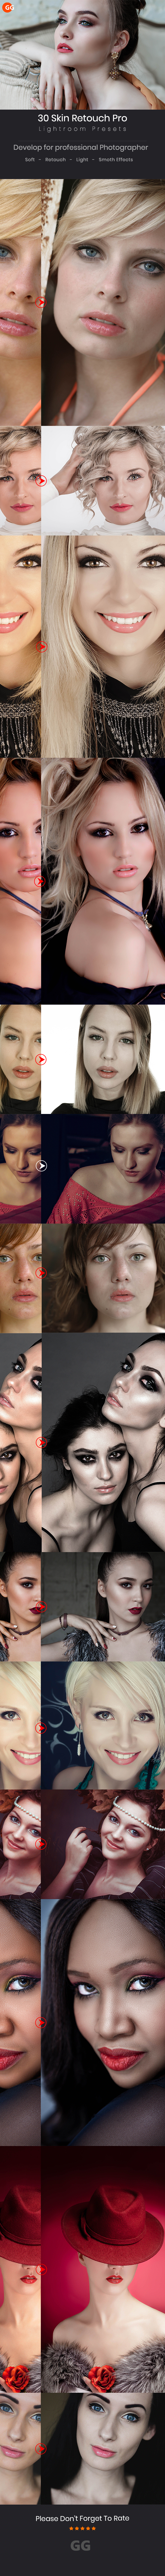 30 Skin Retouch Pro Lightroom Preset - Portrait Lightroom Presets